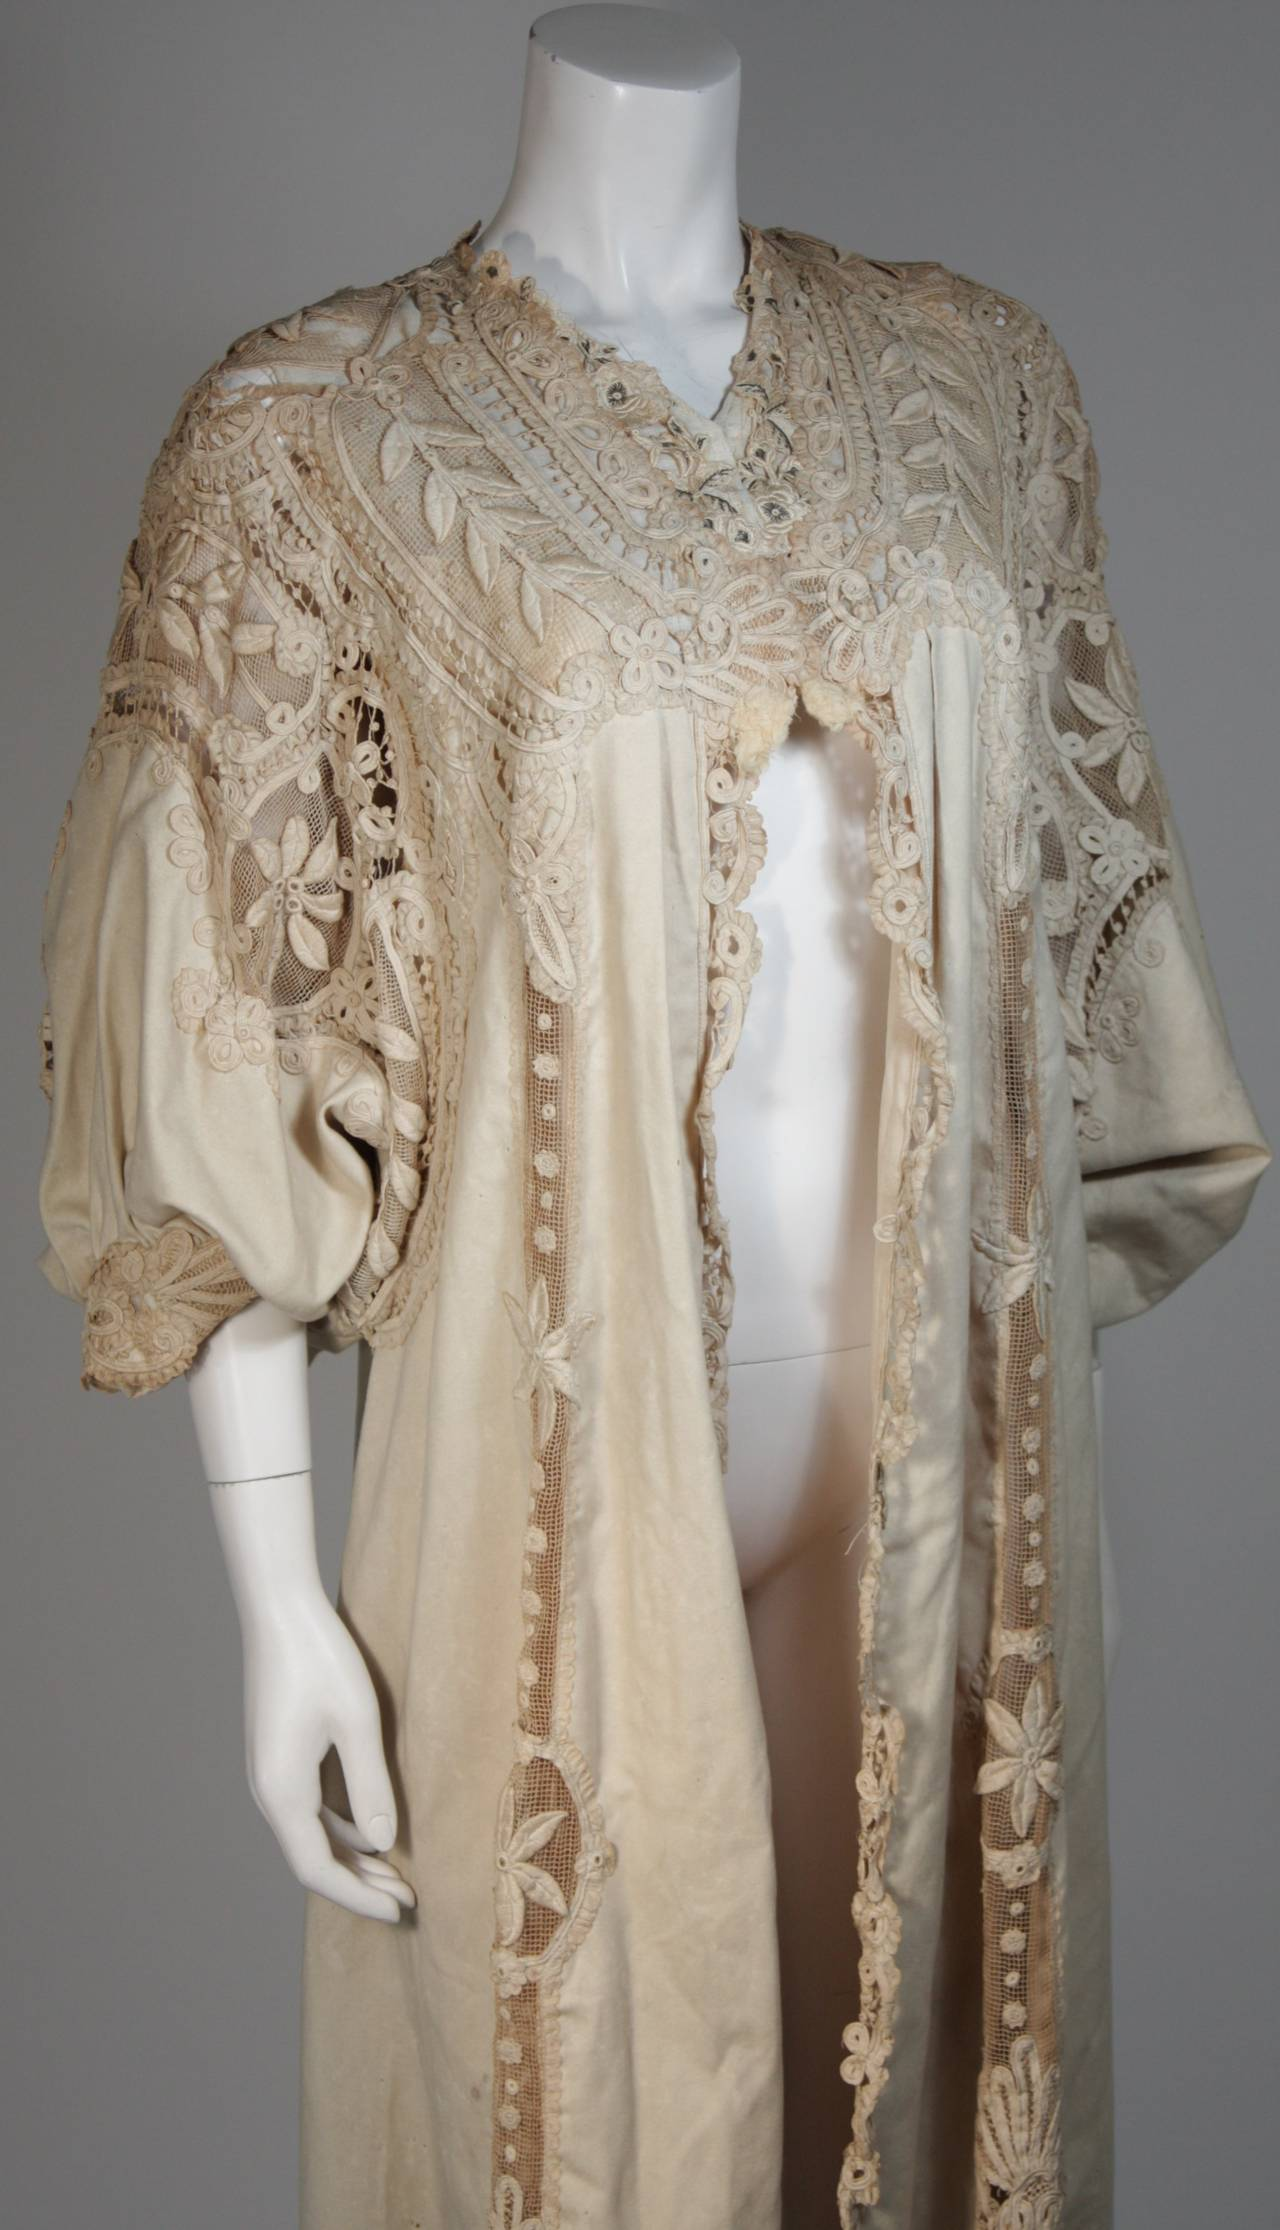 Antique Lace Coat with Bell Sleeve Detail In Excellent Condition For Sale In Los Angeles, CA